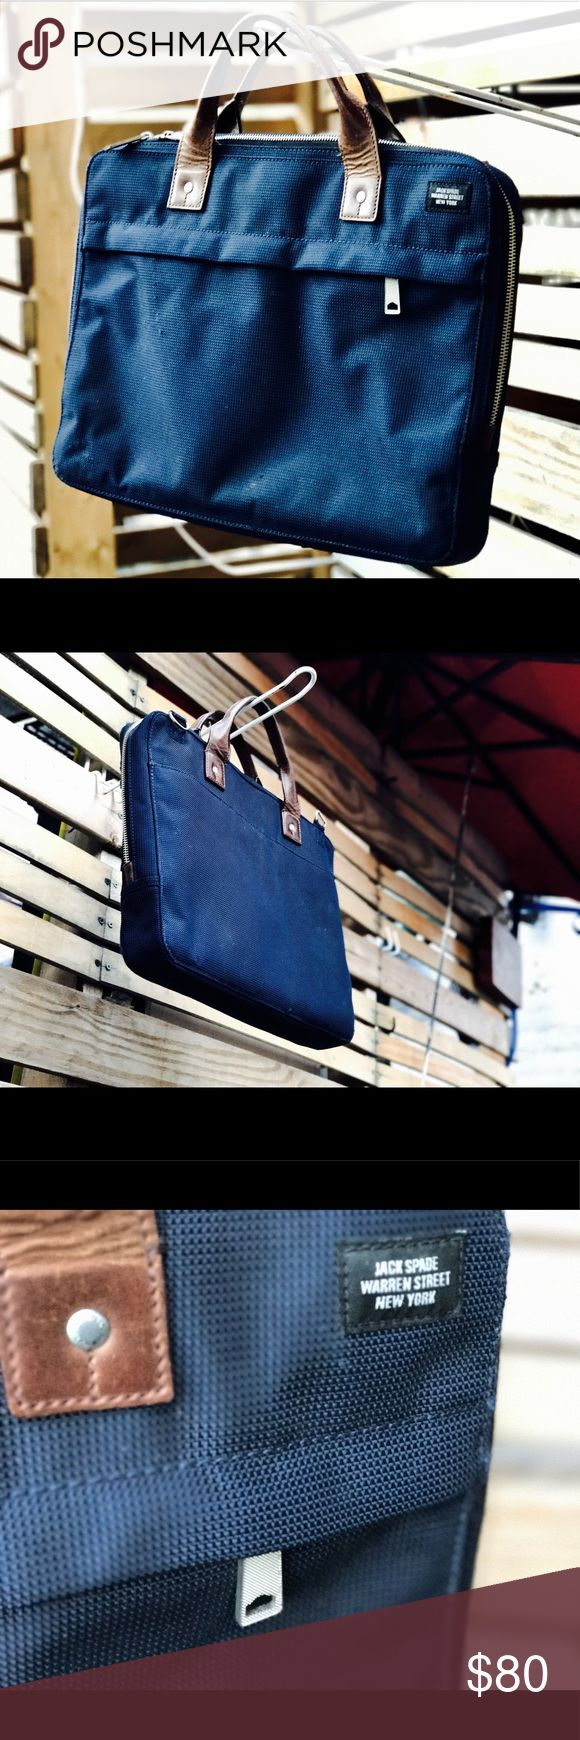 Jack spade men's briefcase Great deal on a $425 bag!!  Jack spade men's blue leather-trimmed nylon briefcase - used and don't have the strap but still a great looking bag that's got plenty of life left. Jack Spade Bags Briefcases